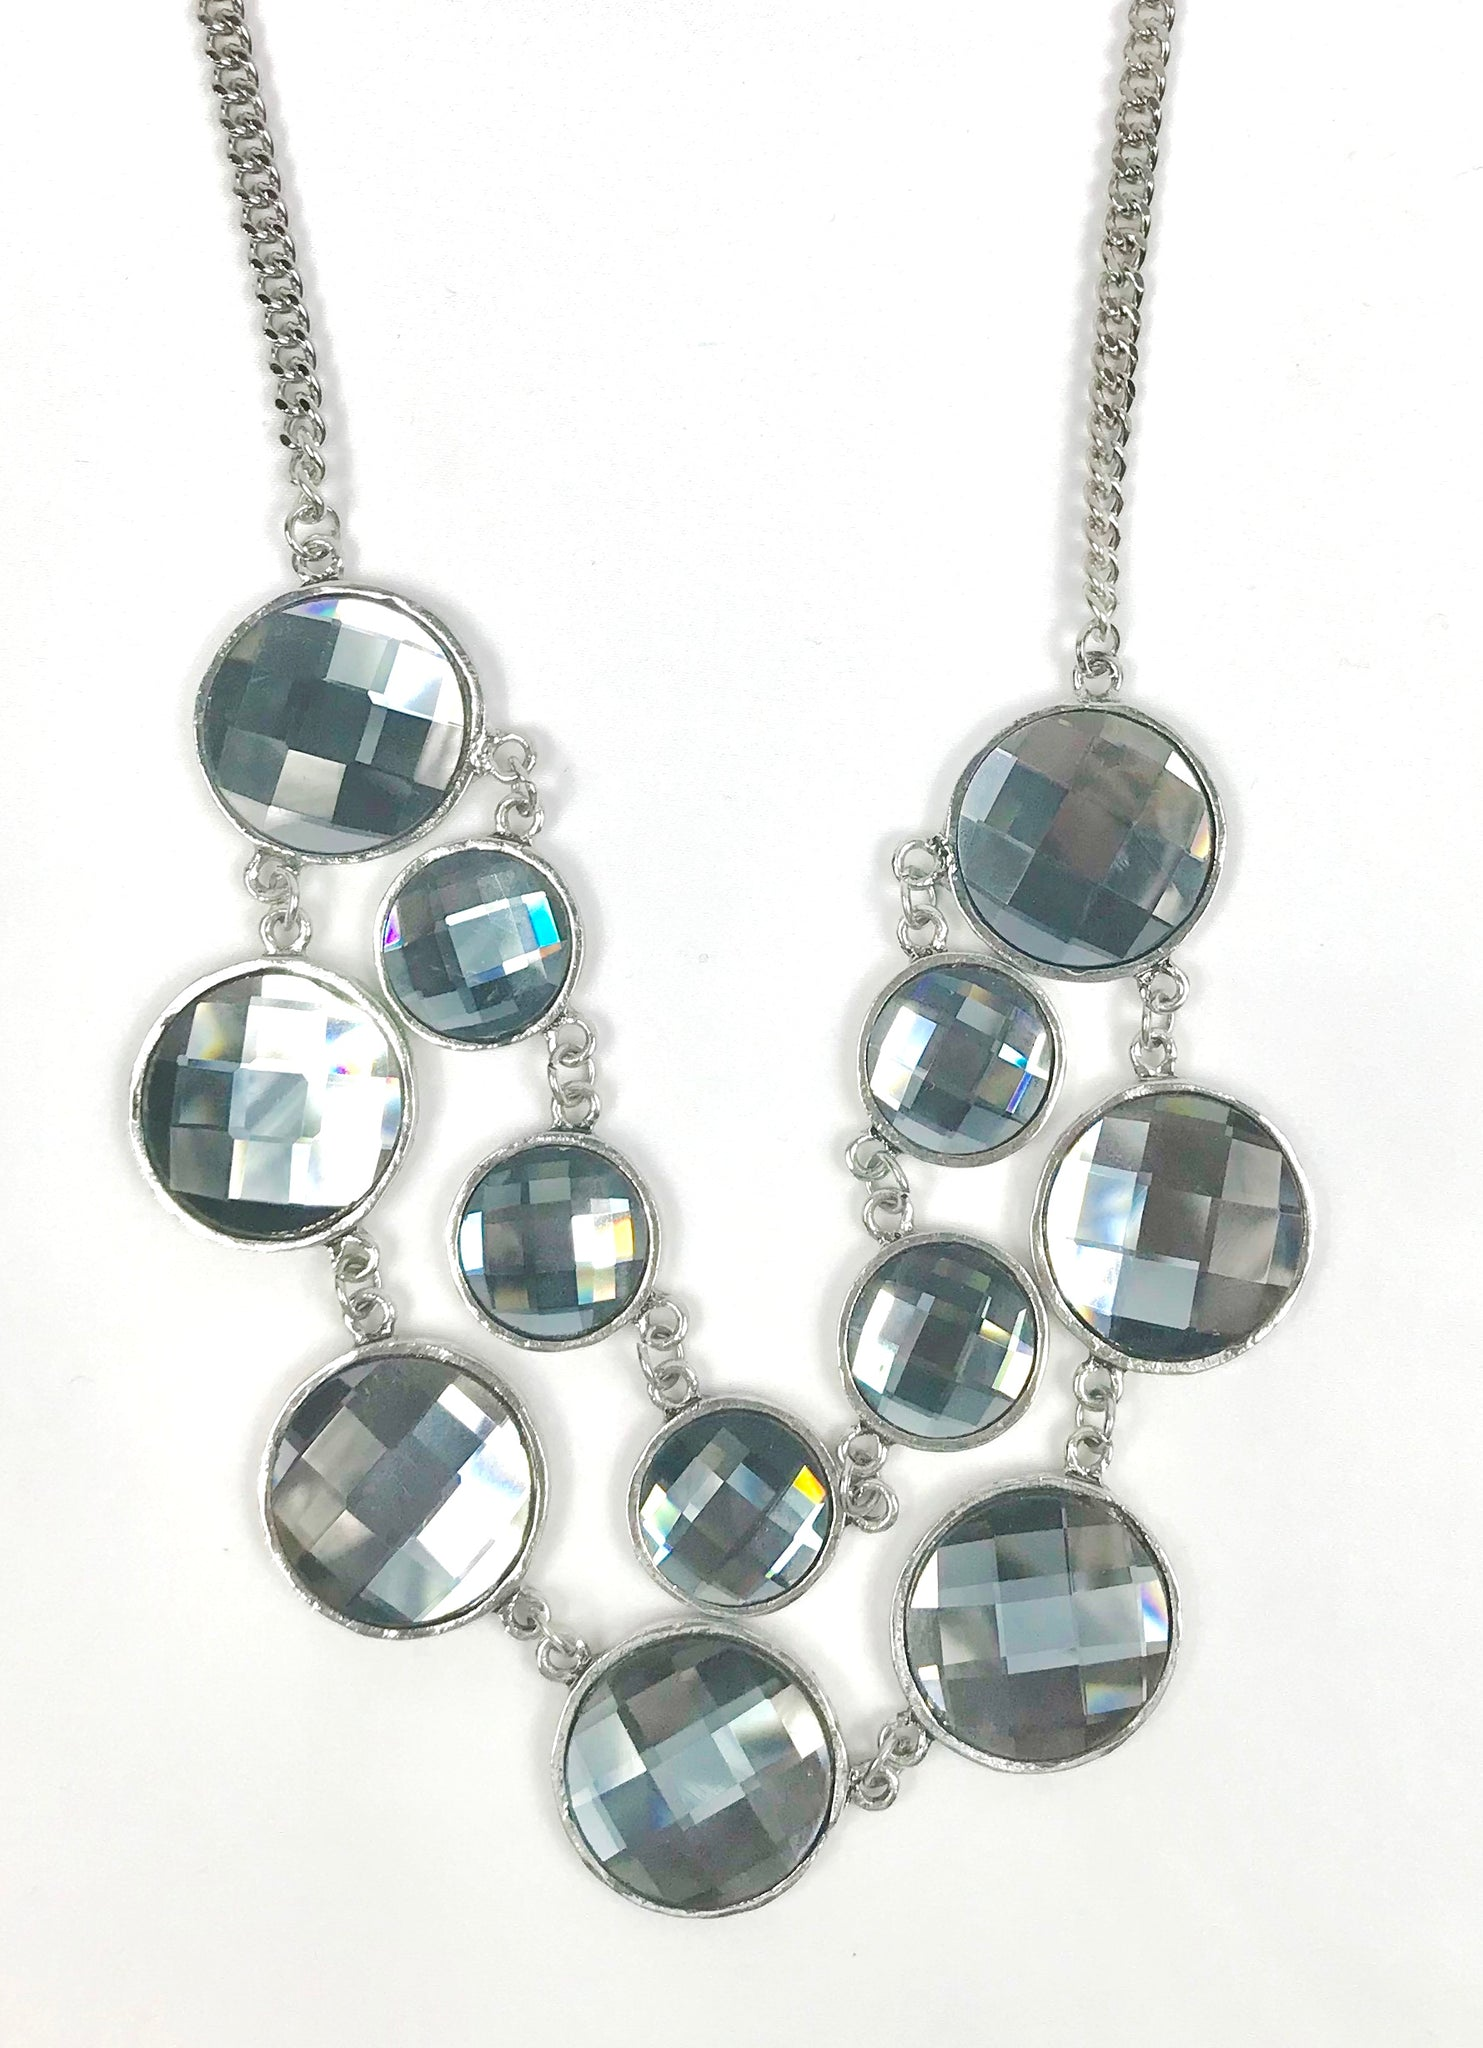 Silver and Blue Gem Necklace